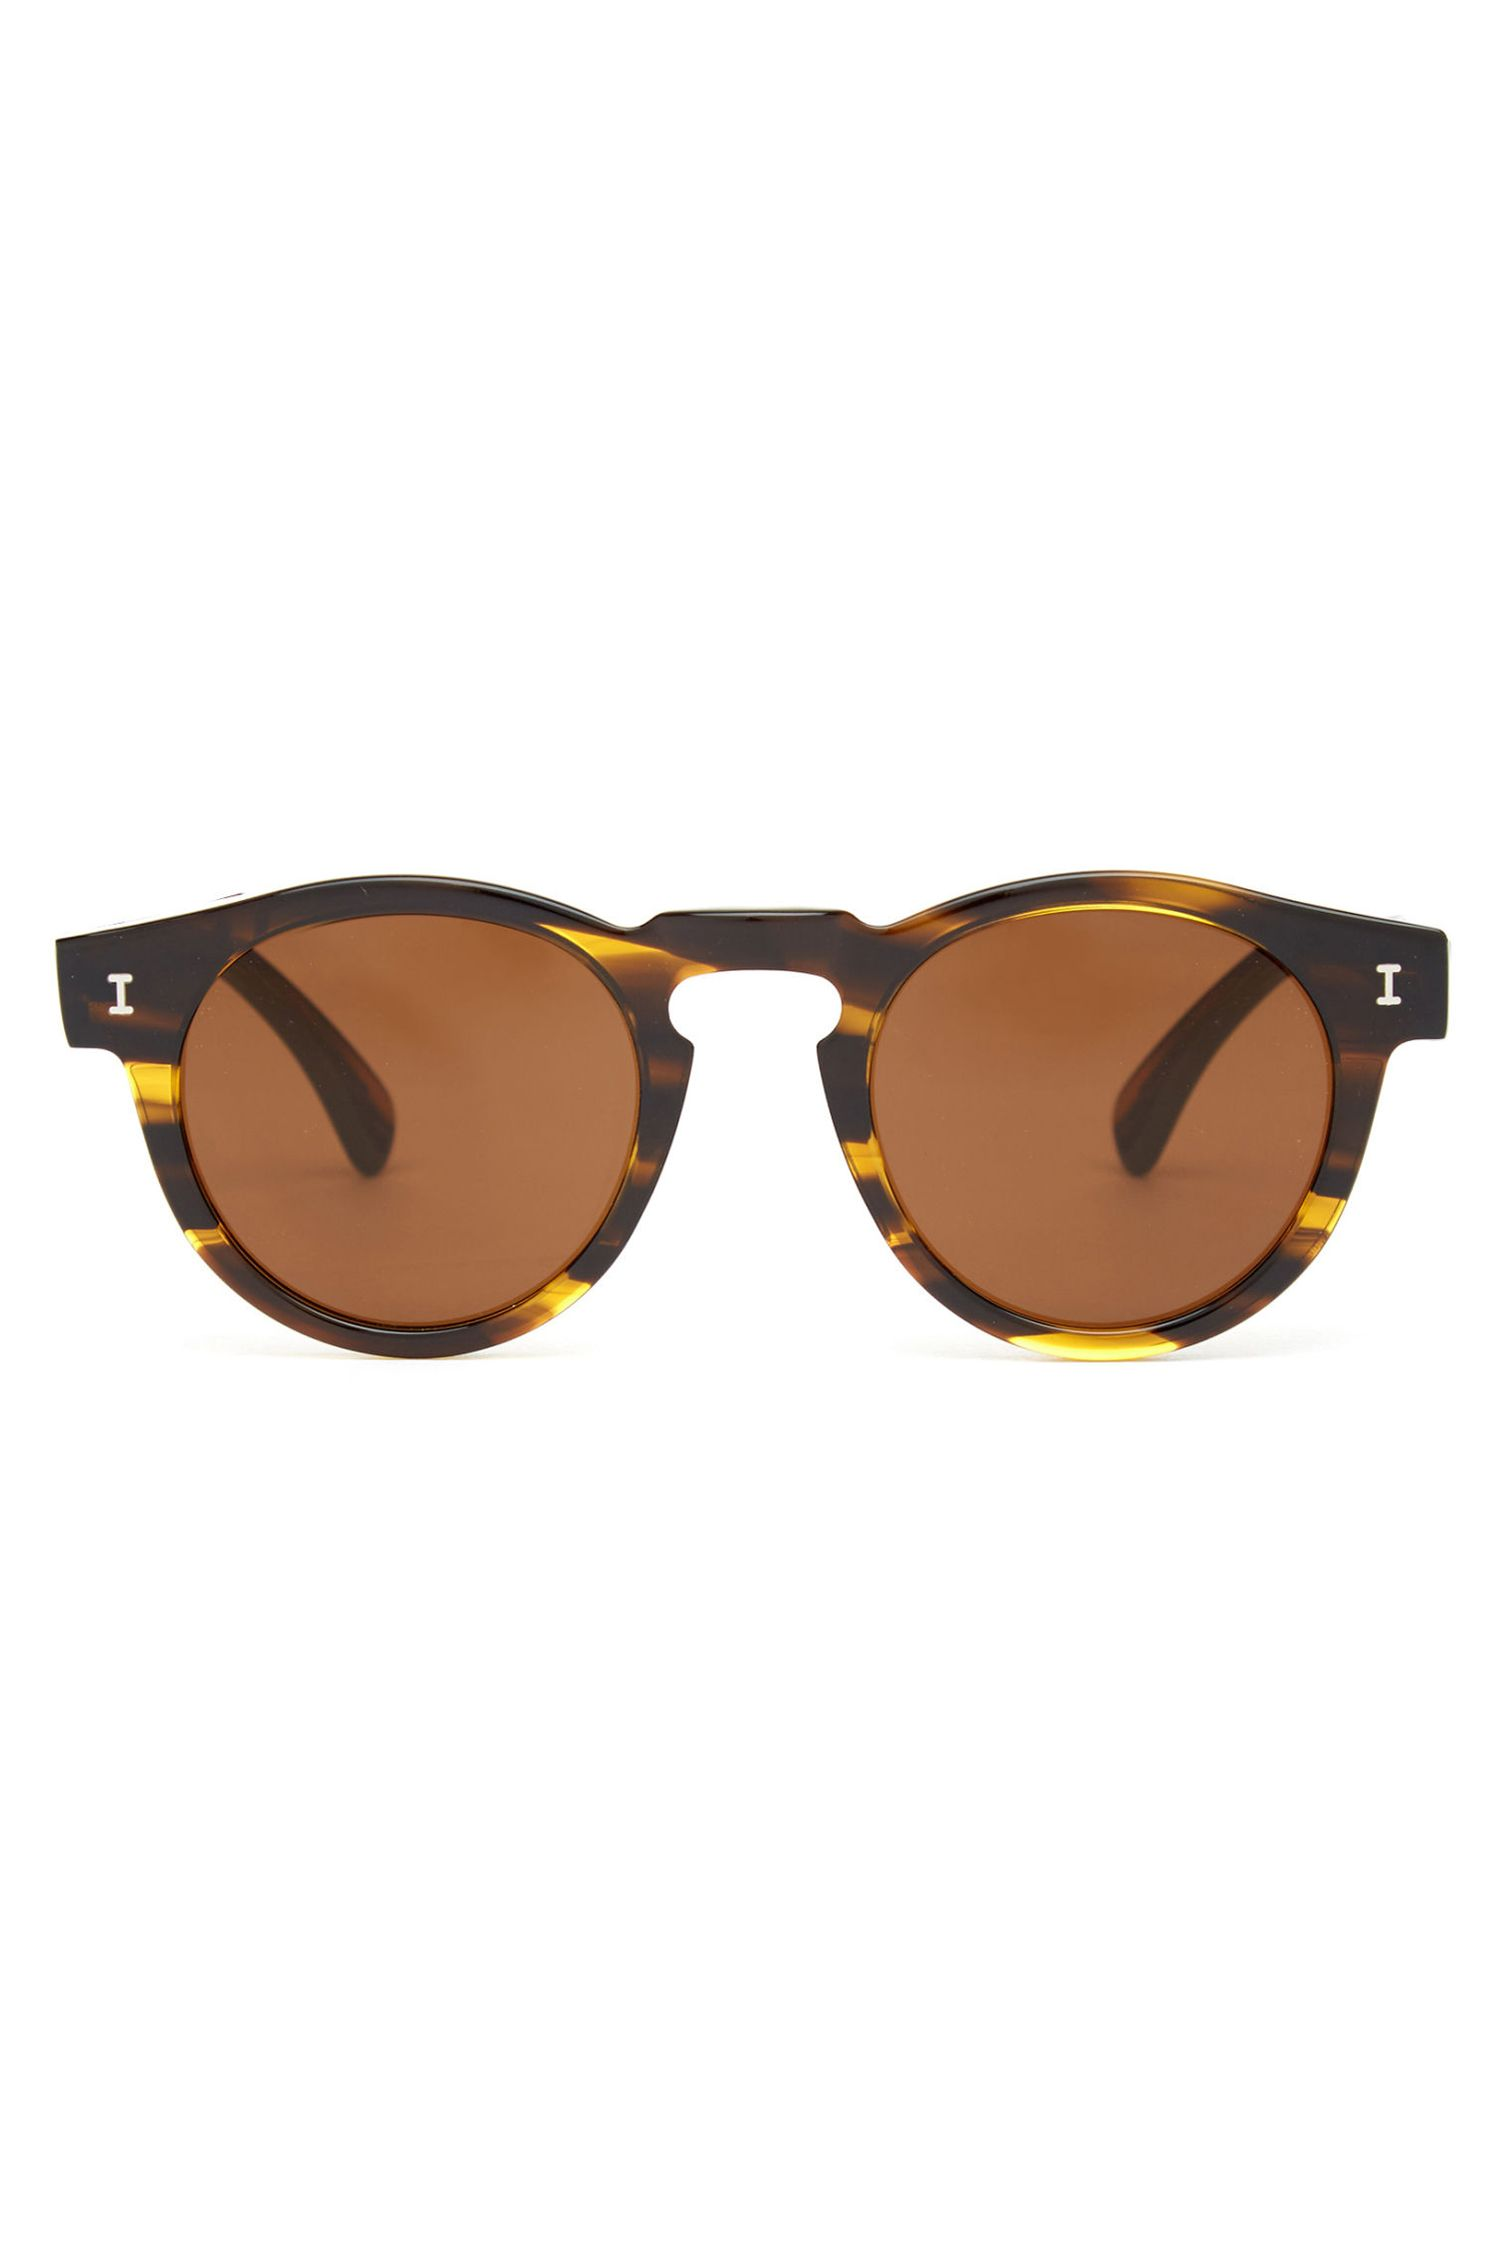 "<p>Unless you're prone to losing sunglasses, make them a basic you invest in. You'll notice the difference between a handmade pair and not the moment you take the former out of its case.</p>  <p><em data-redactor-tag=""em"" data-verified=""redactor"">Illesteva Leonard Sunglasses, $211; </em><a href=""http://www.matchesfashion.com/us/products/Illesteva-Leonard-sunglasses%09-1050977"" data-tracking-id=""recirc-text-link""><em data-redactor-tag=""em"" data-verified=""redactor"">matchesfashion.com</em></a></p>"